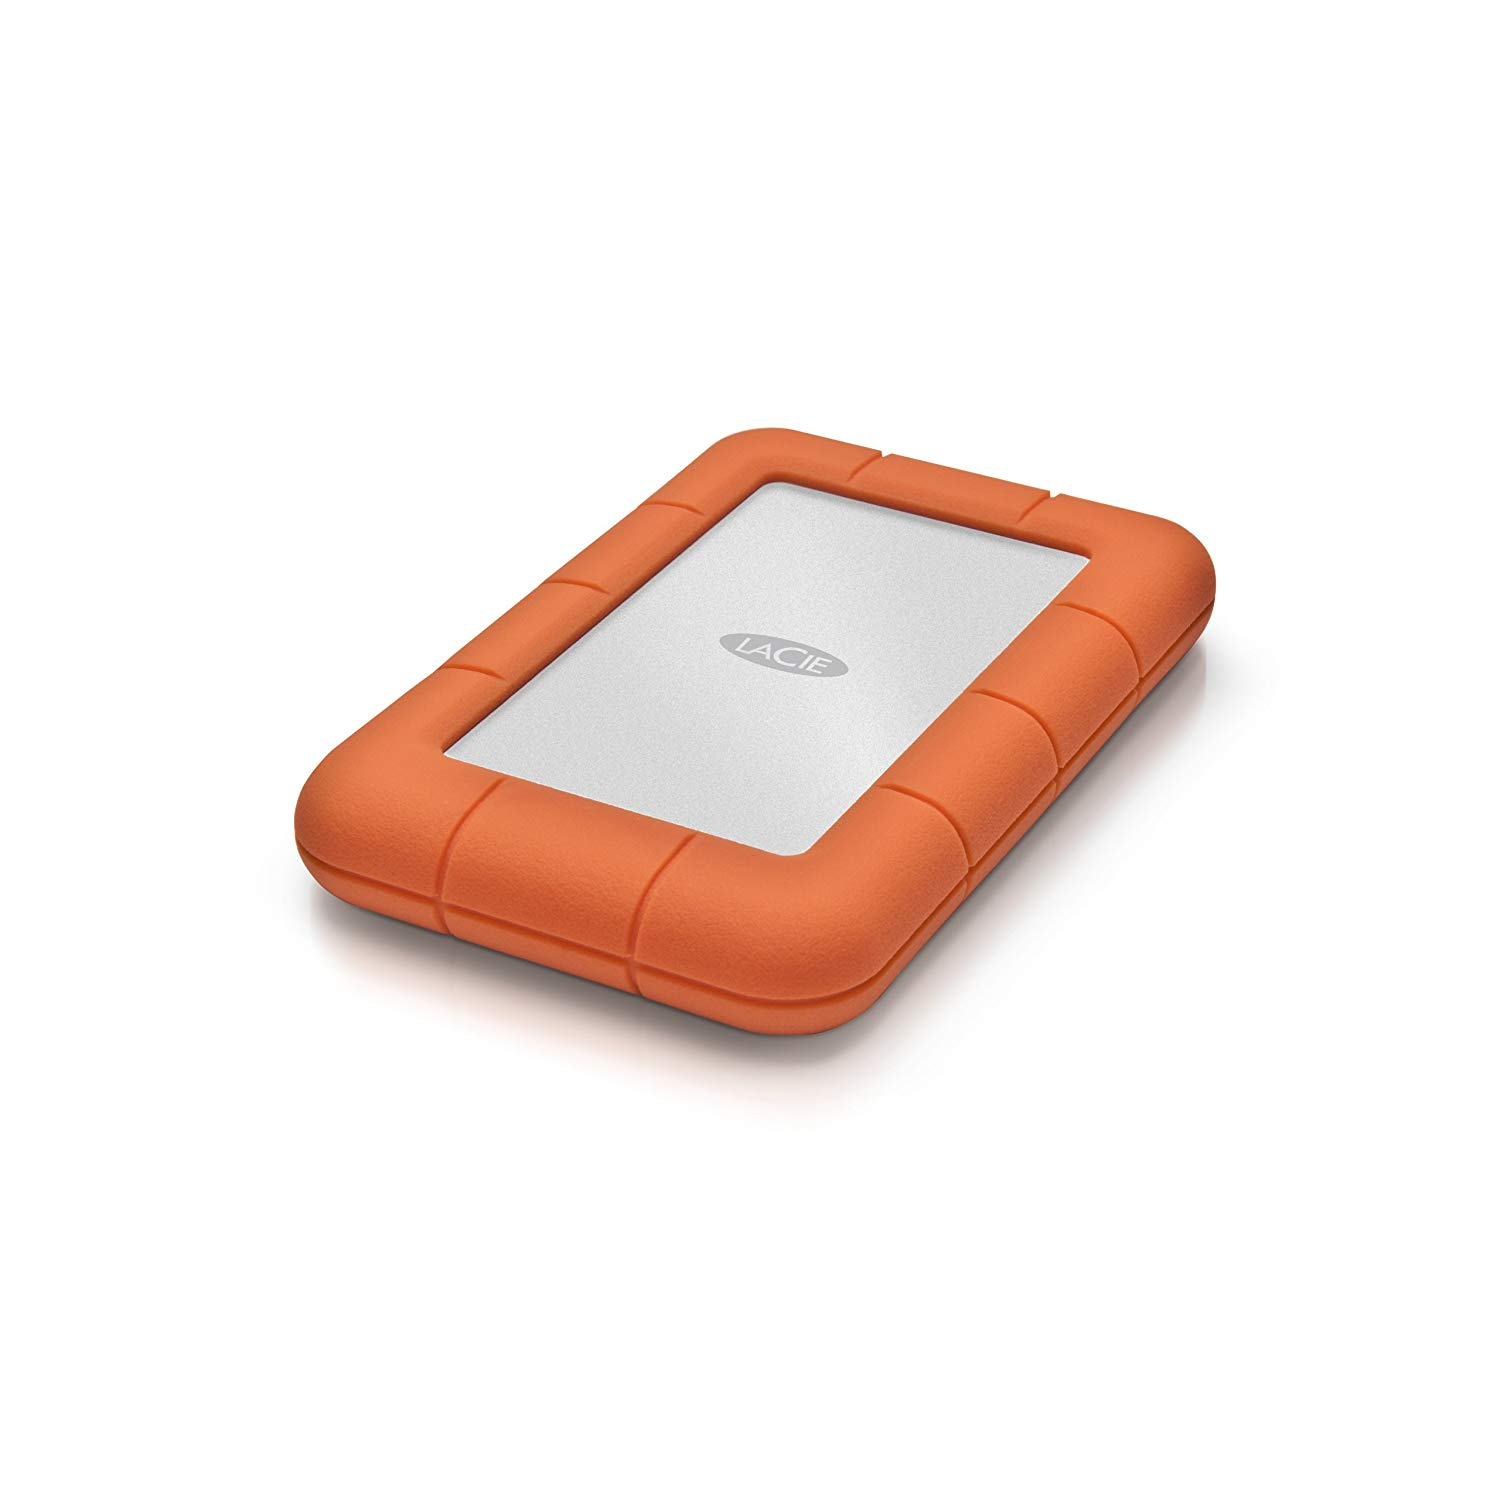 LaCie Rugged Mini 2TB USB 3.0 / USB 2.0 Portable Hard Drive